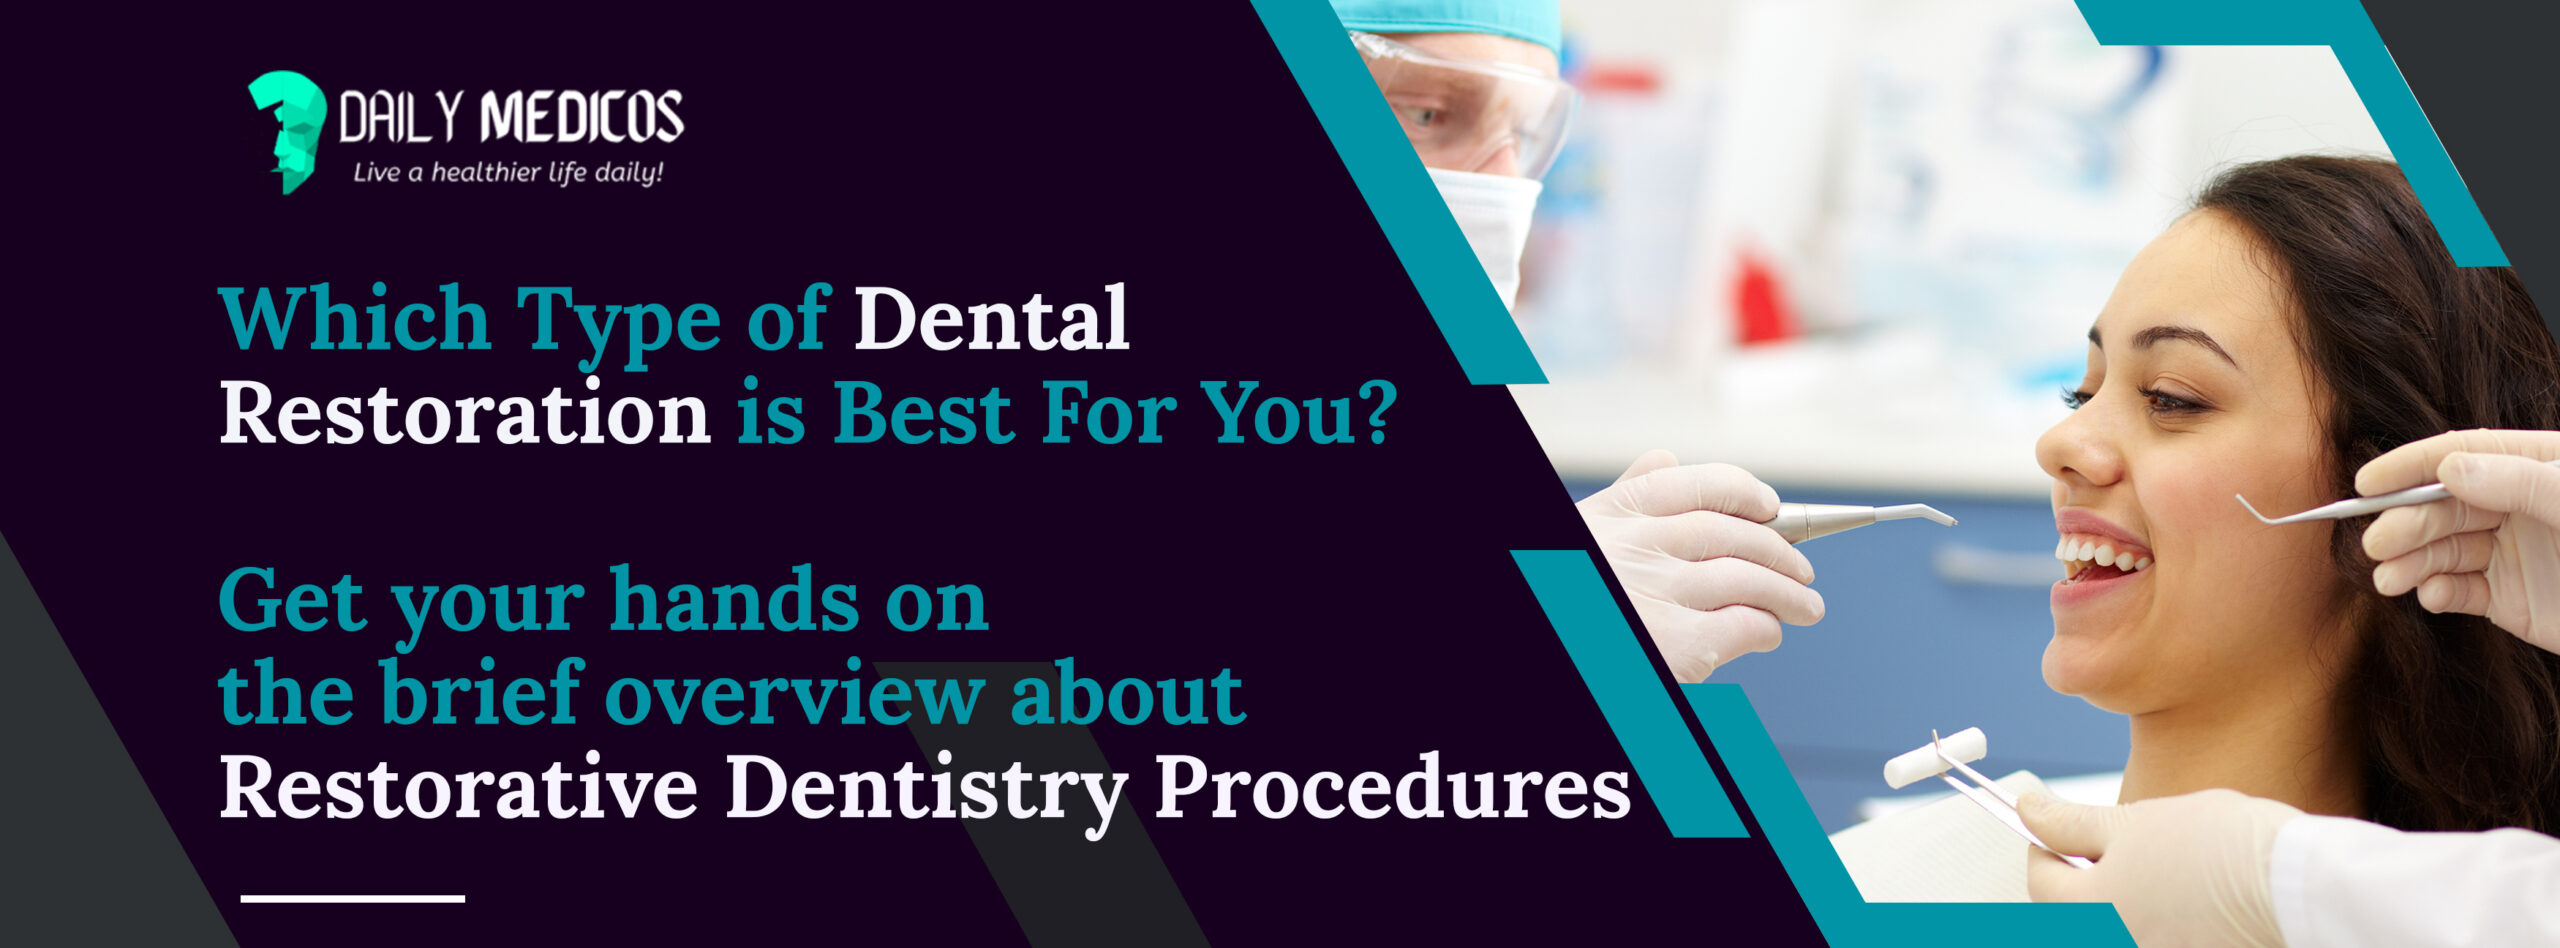 Which Type of Dental Restoration is Best For You? The Brief Overview About Restorative Dentistry Procedures 1 - Daily Medicos